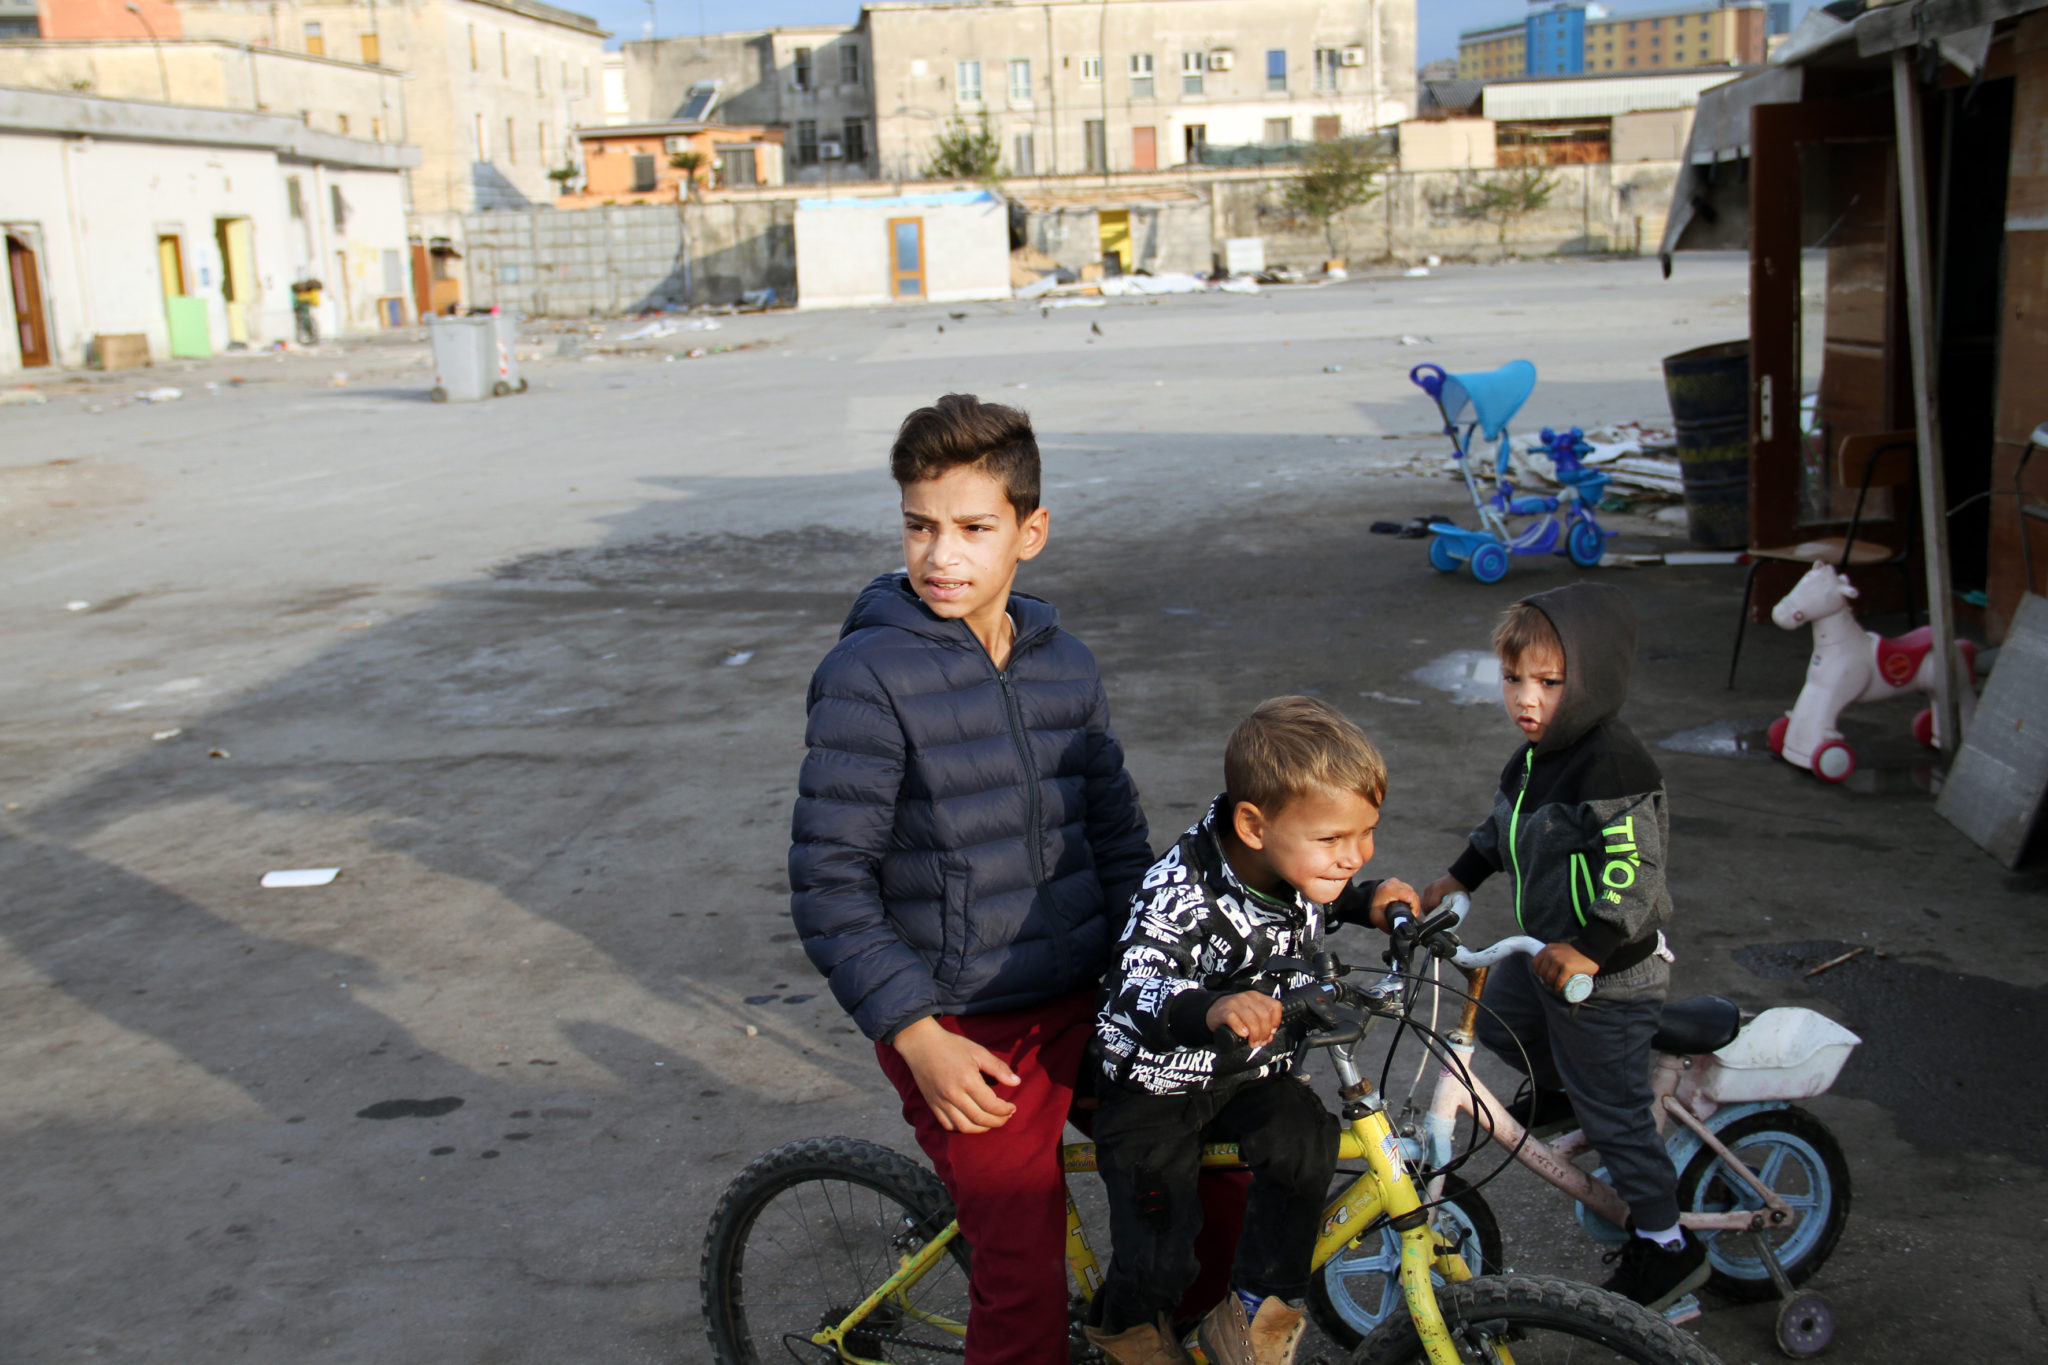 European Commission must deliver justice for Italy's Roma